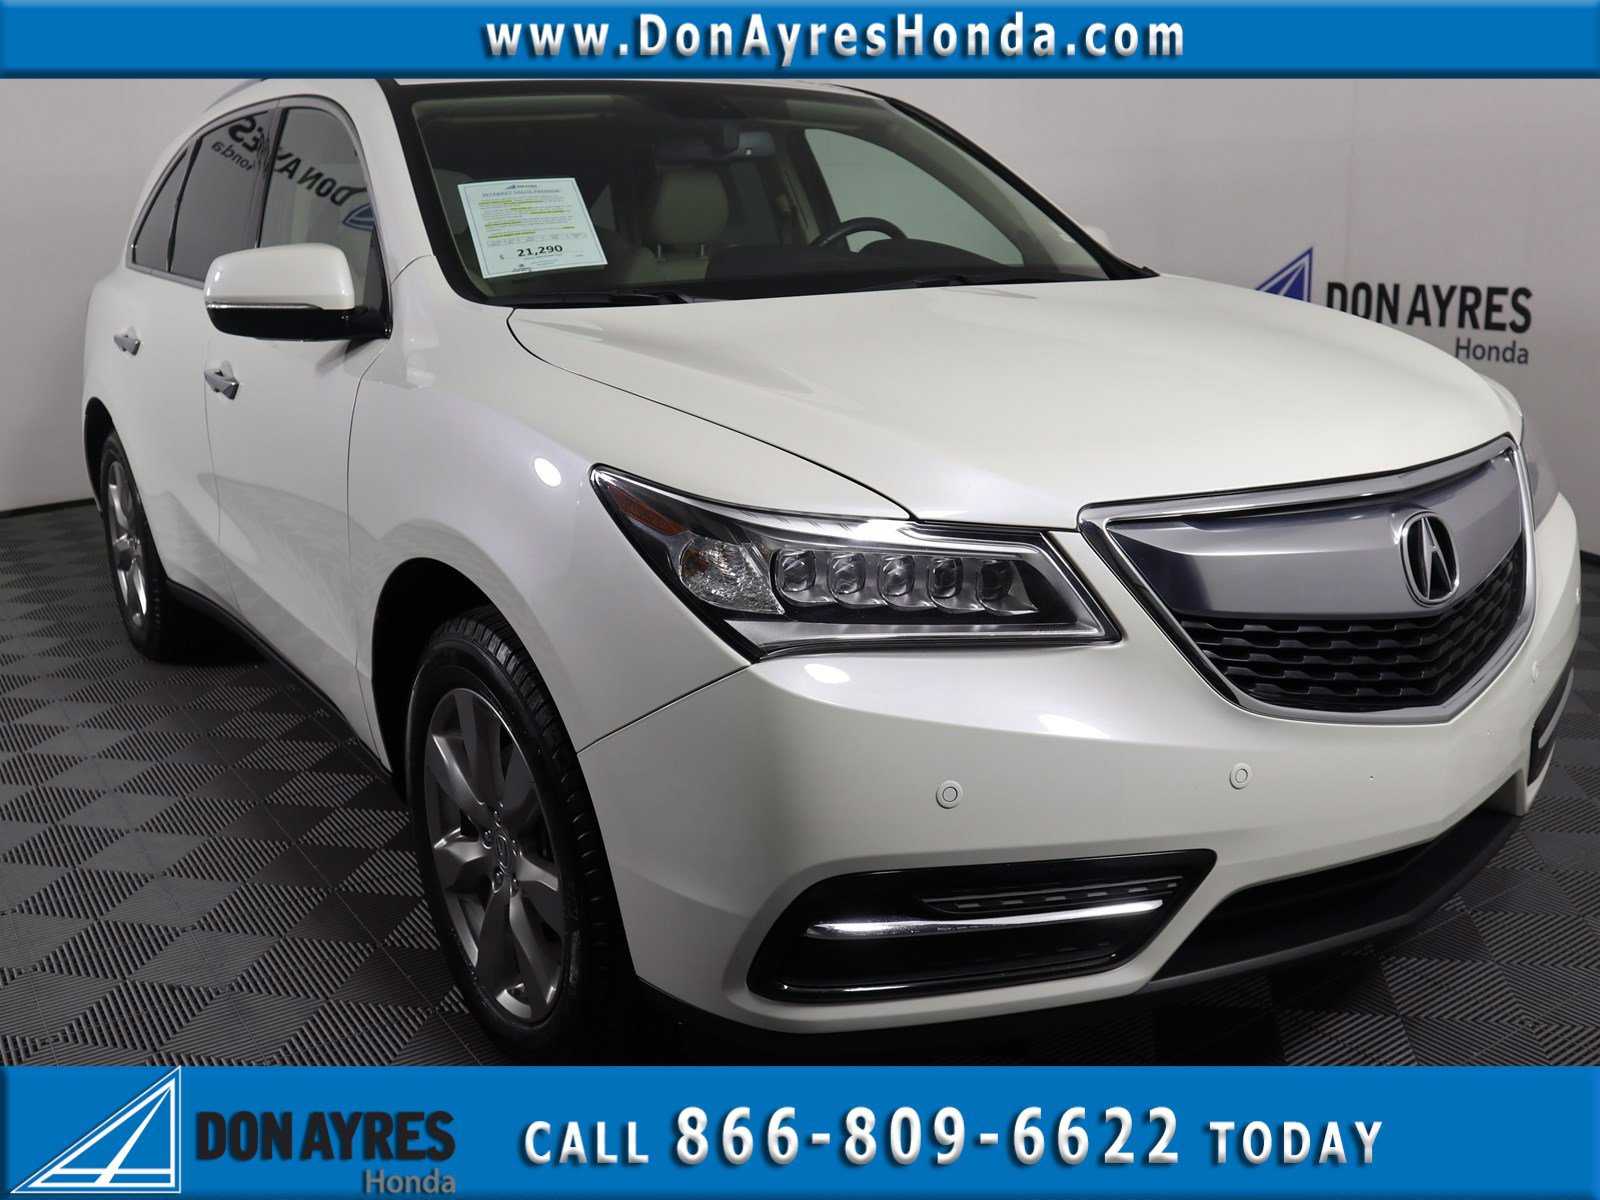 2015 Acura MDX SH-AWD w/ Advance Package image